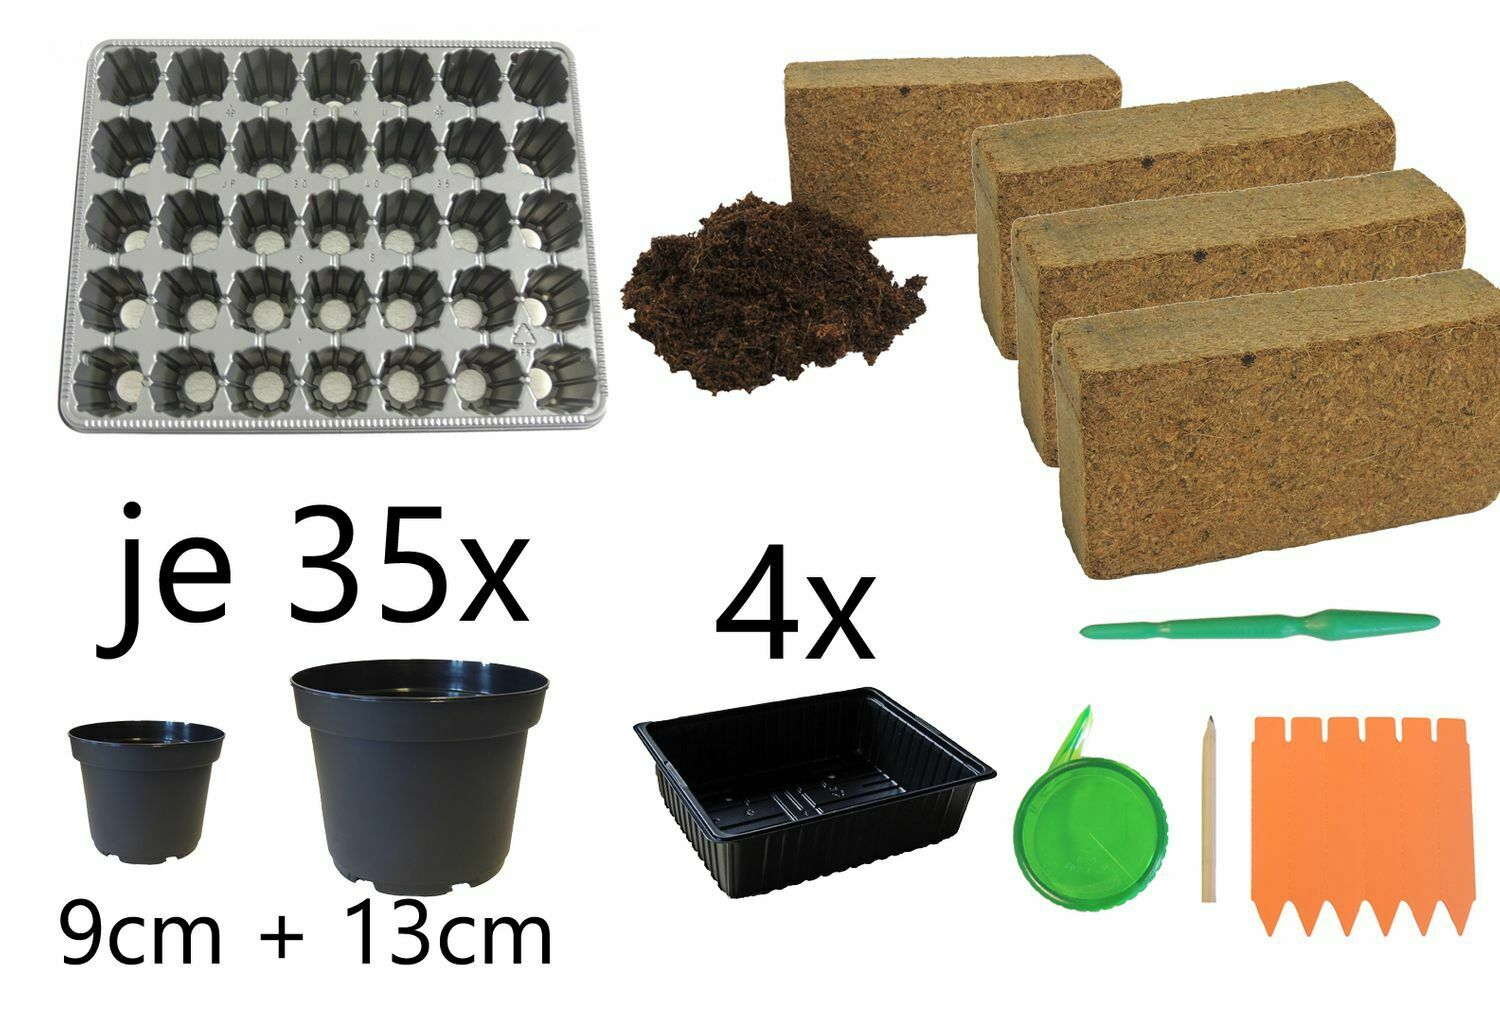 Breeding Sowing And Pikierset 88-Teilig For 35 Plants Tomatoes Chili Paprika